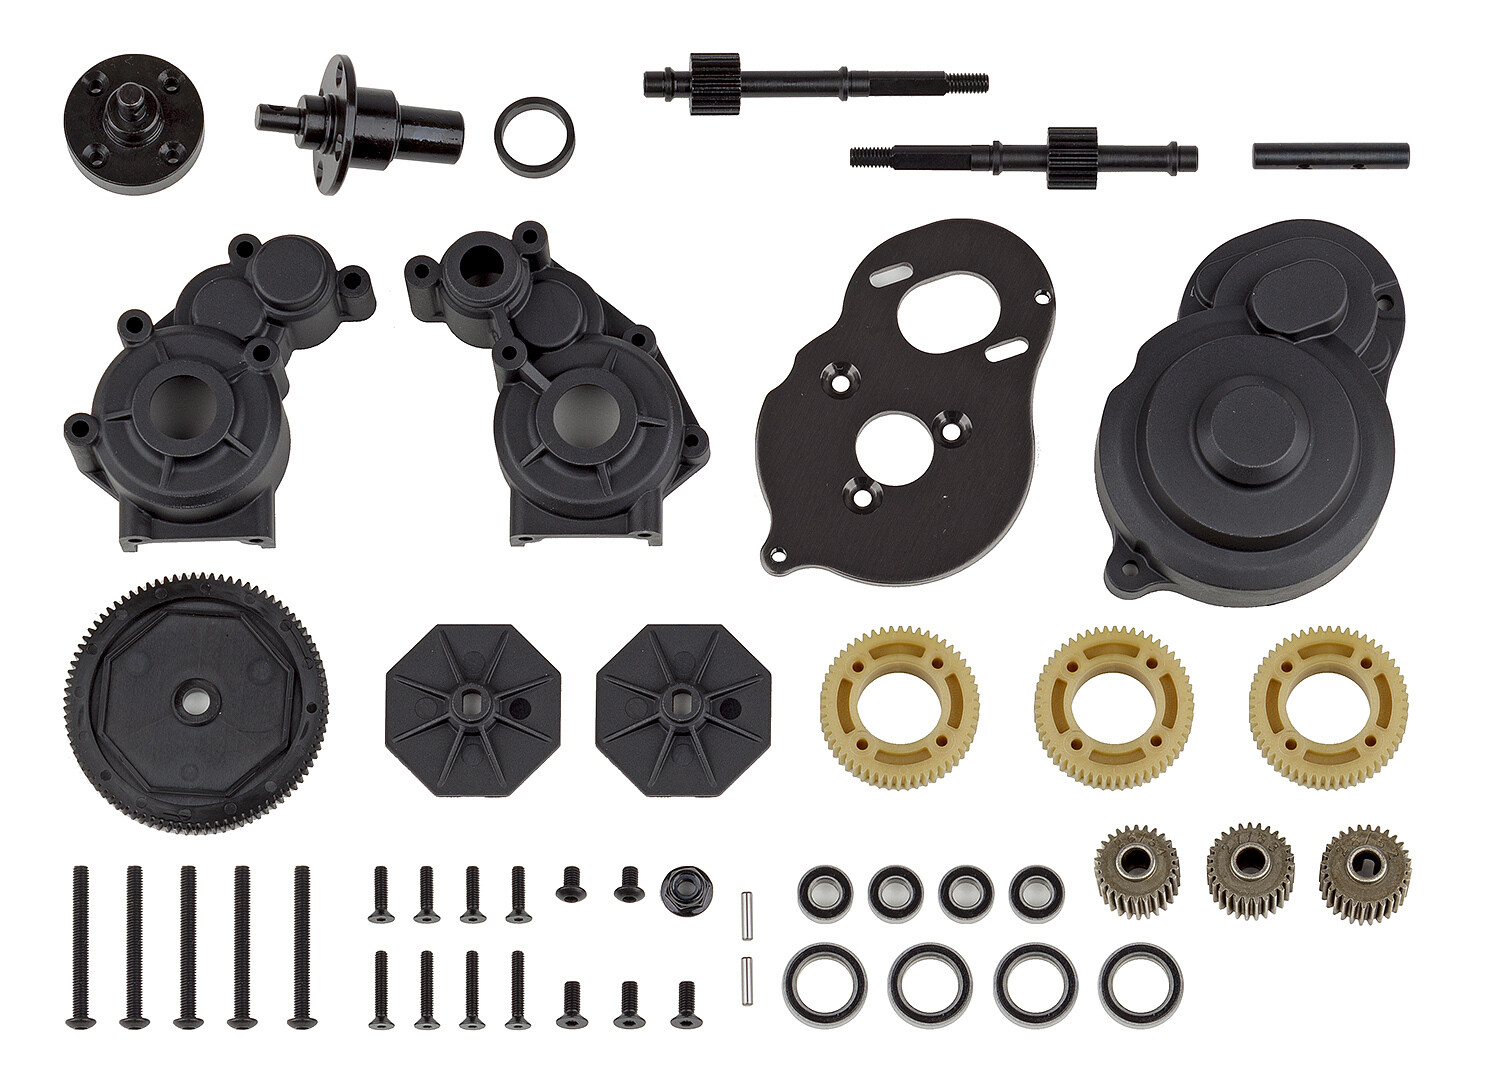 Enduro Stealth X Gearbox Kit